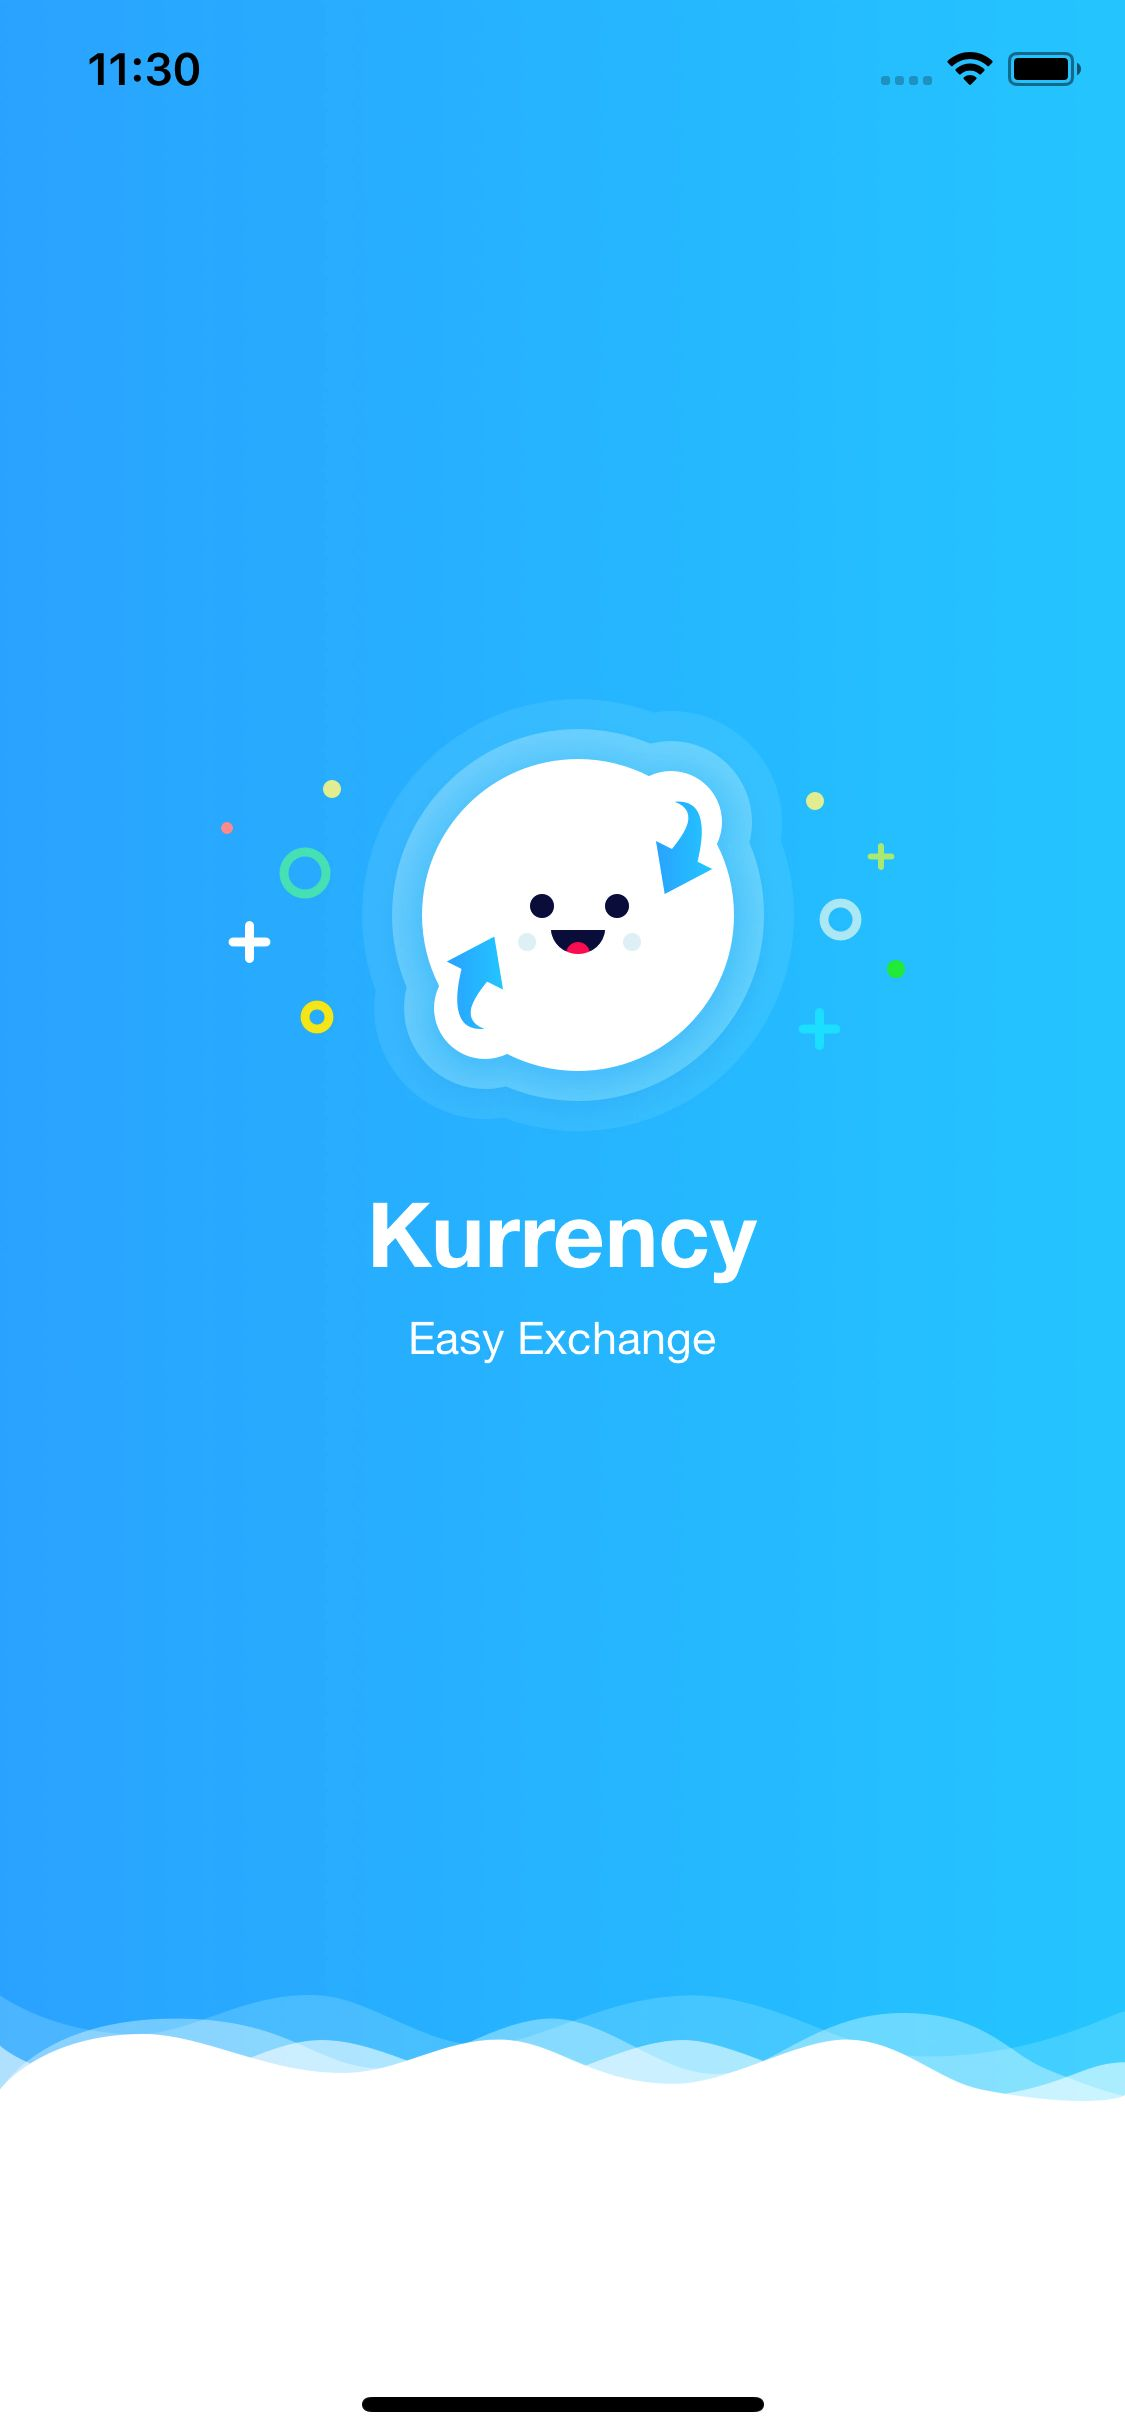 Kurrency - Currency Converter iOS Template Screenshot 1